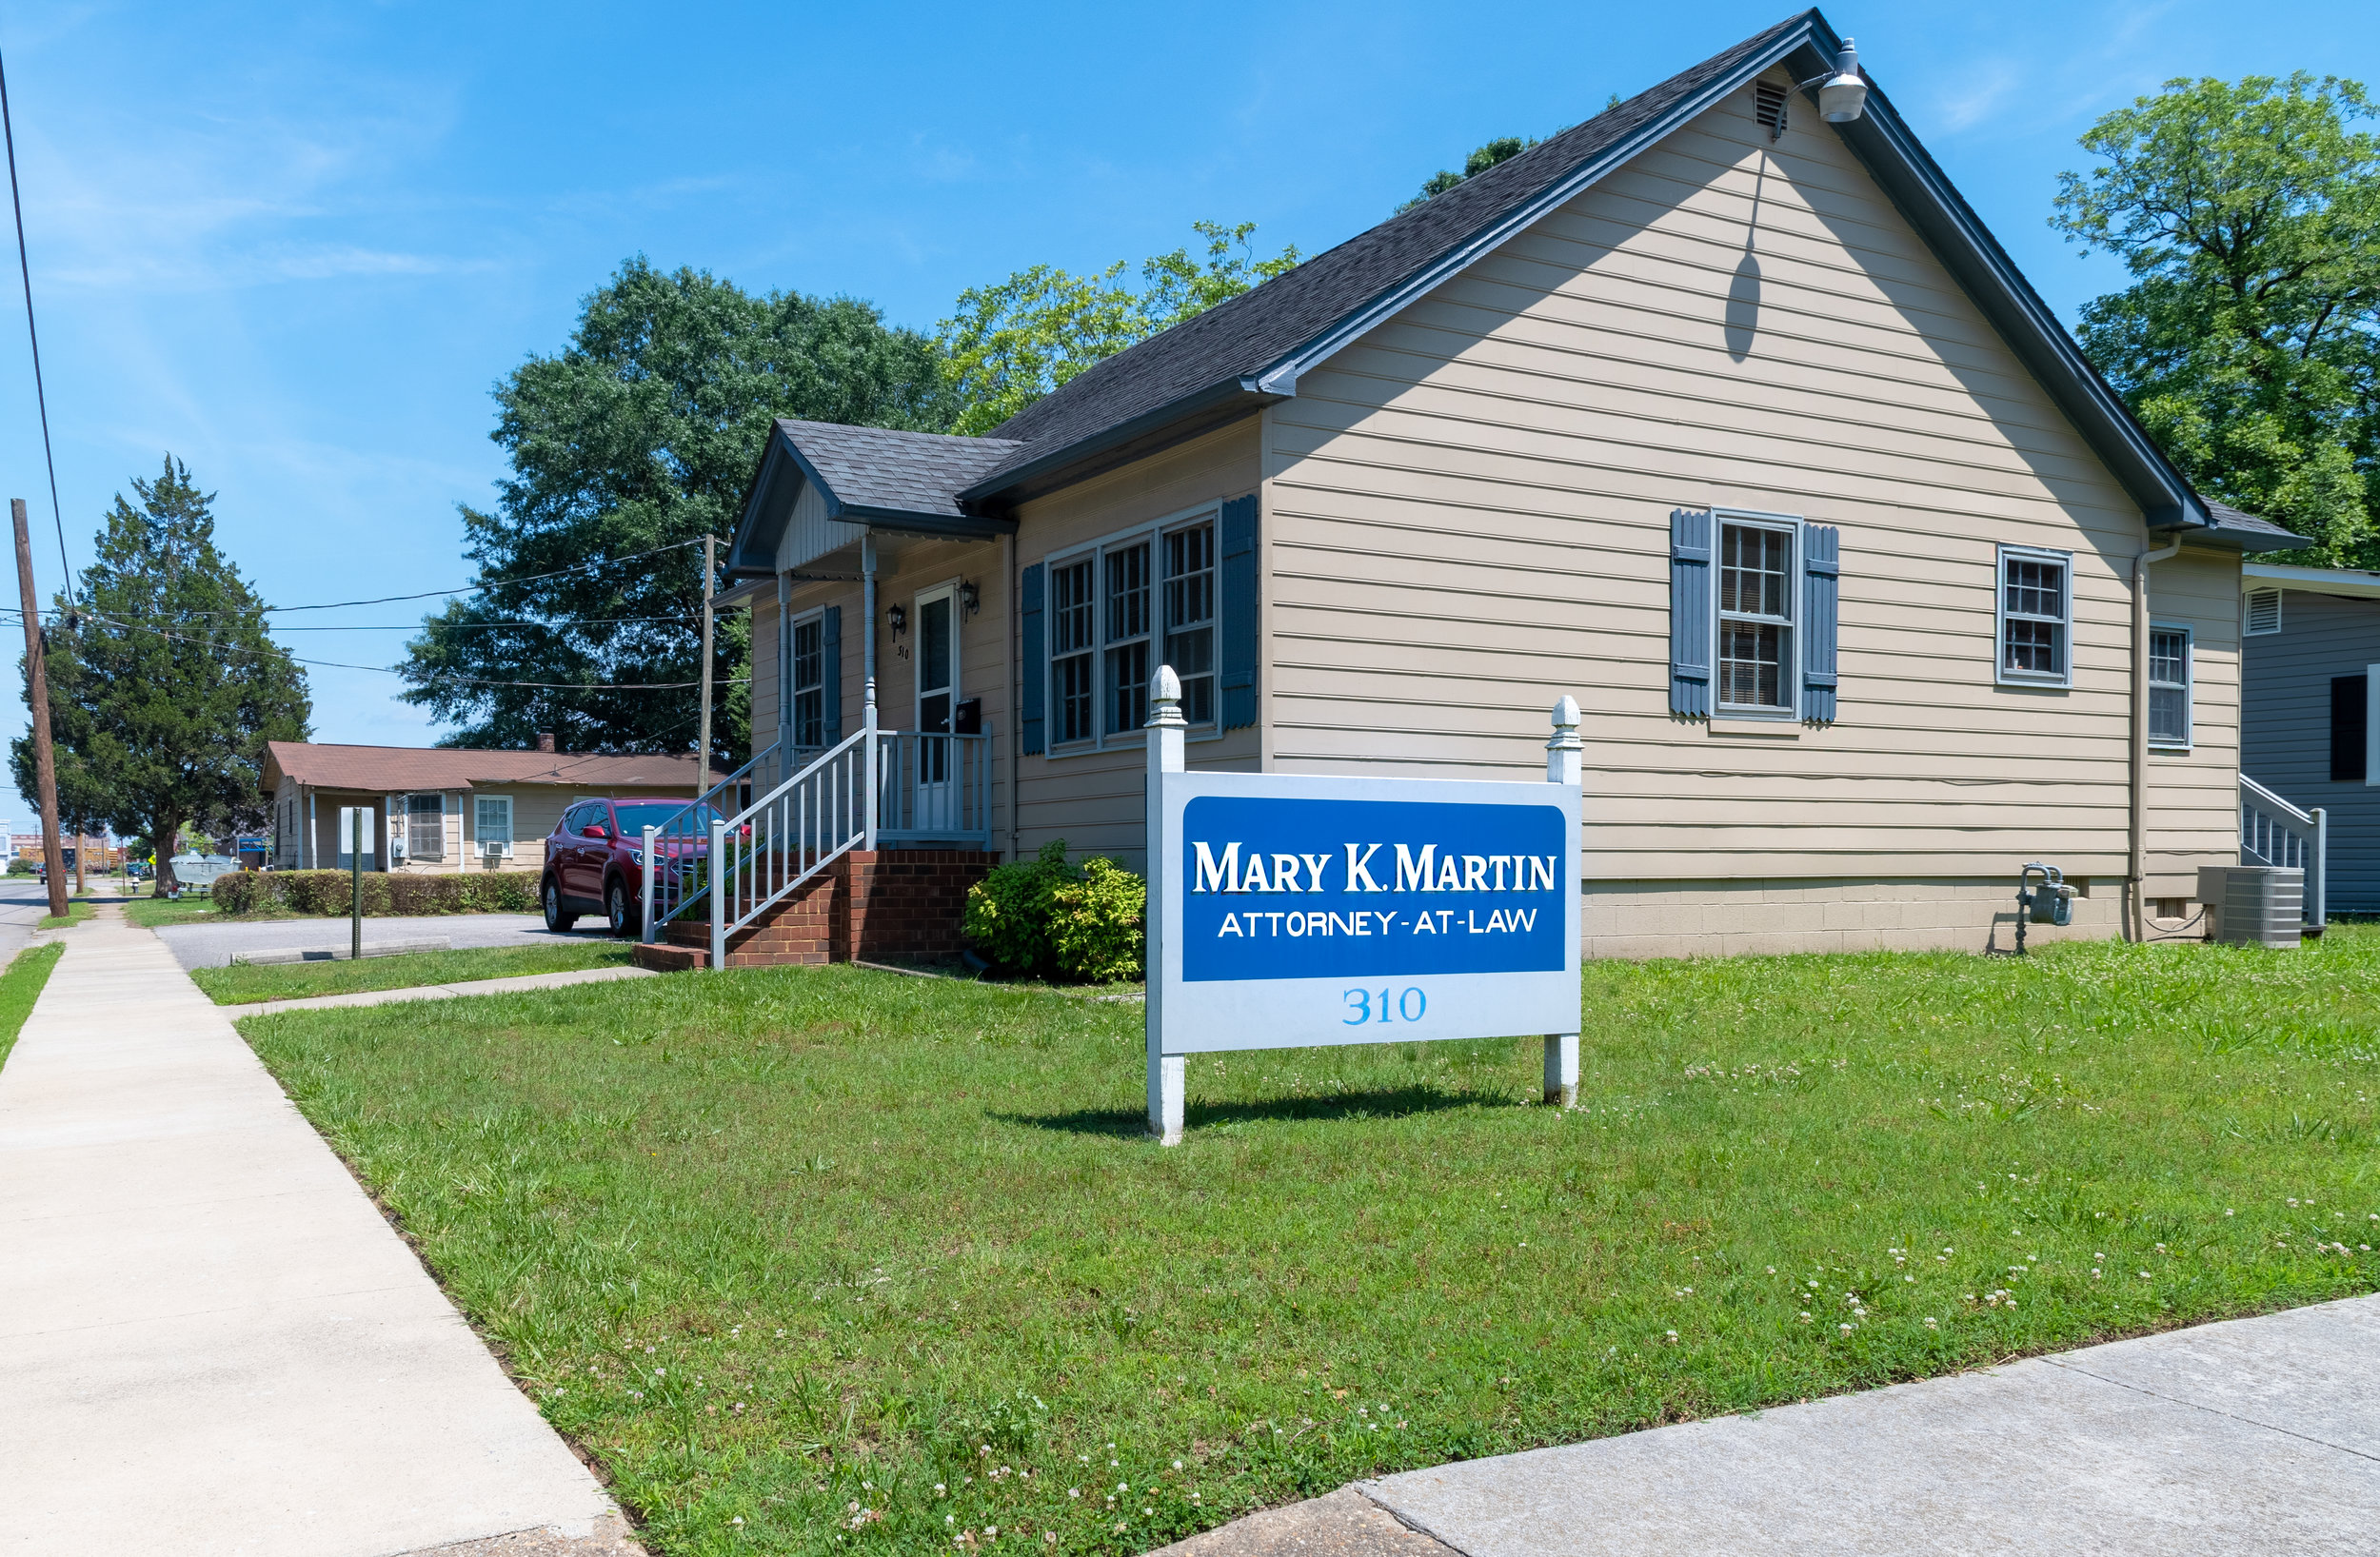 Our Practice - Mary K. Martin Law has been operating in Central Virginia and Hopewell since opening our doors more than 12 years ago.